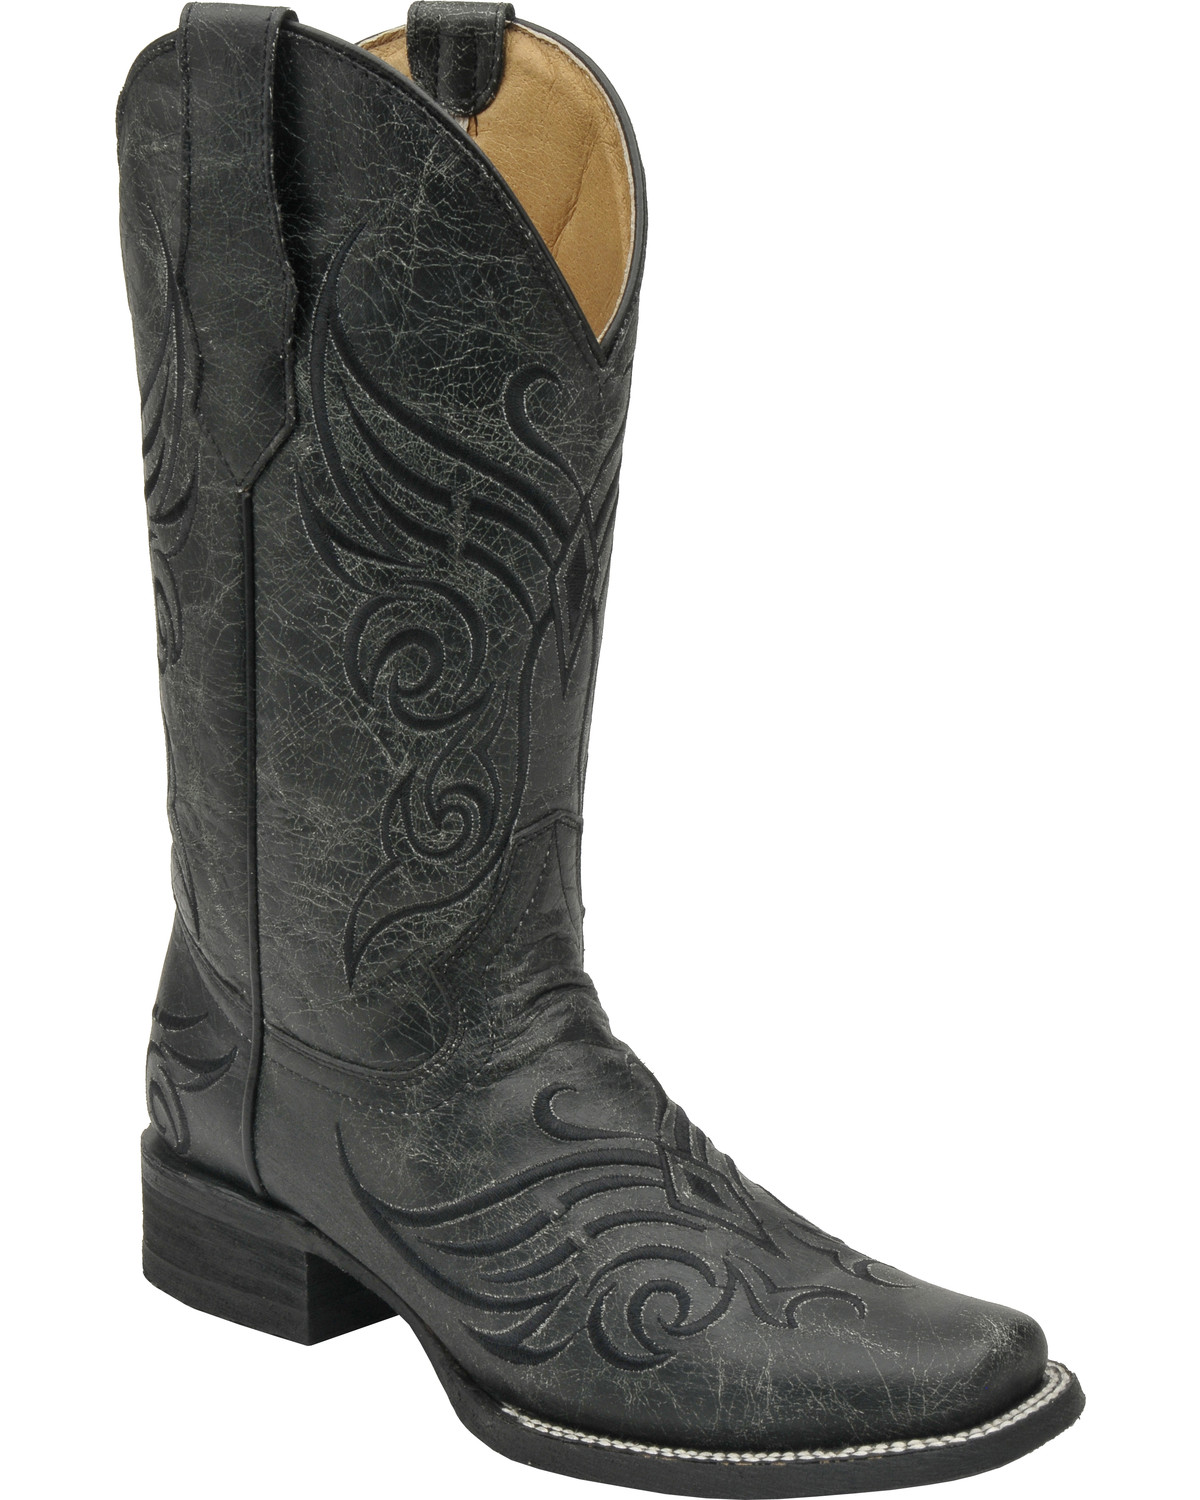 Circle G Women S Diamond Embroidered Cowgirl Boot Square: Circle G Women's Crackle Western Boots